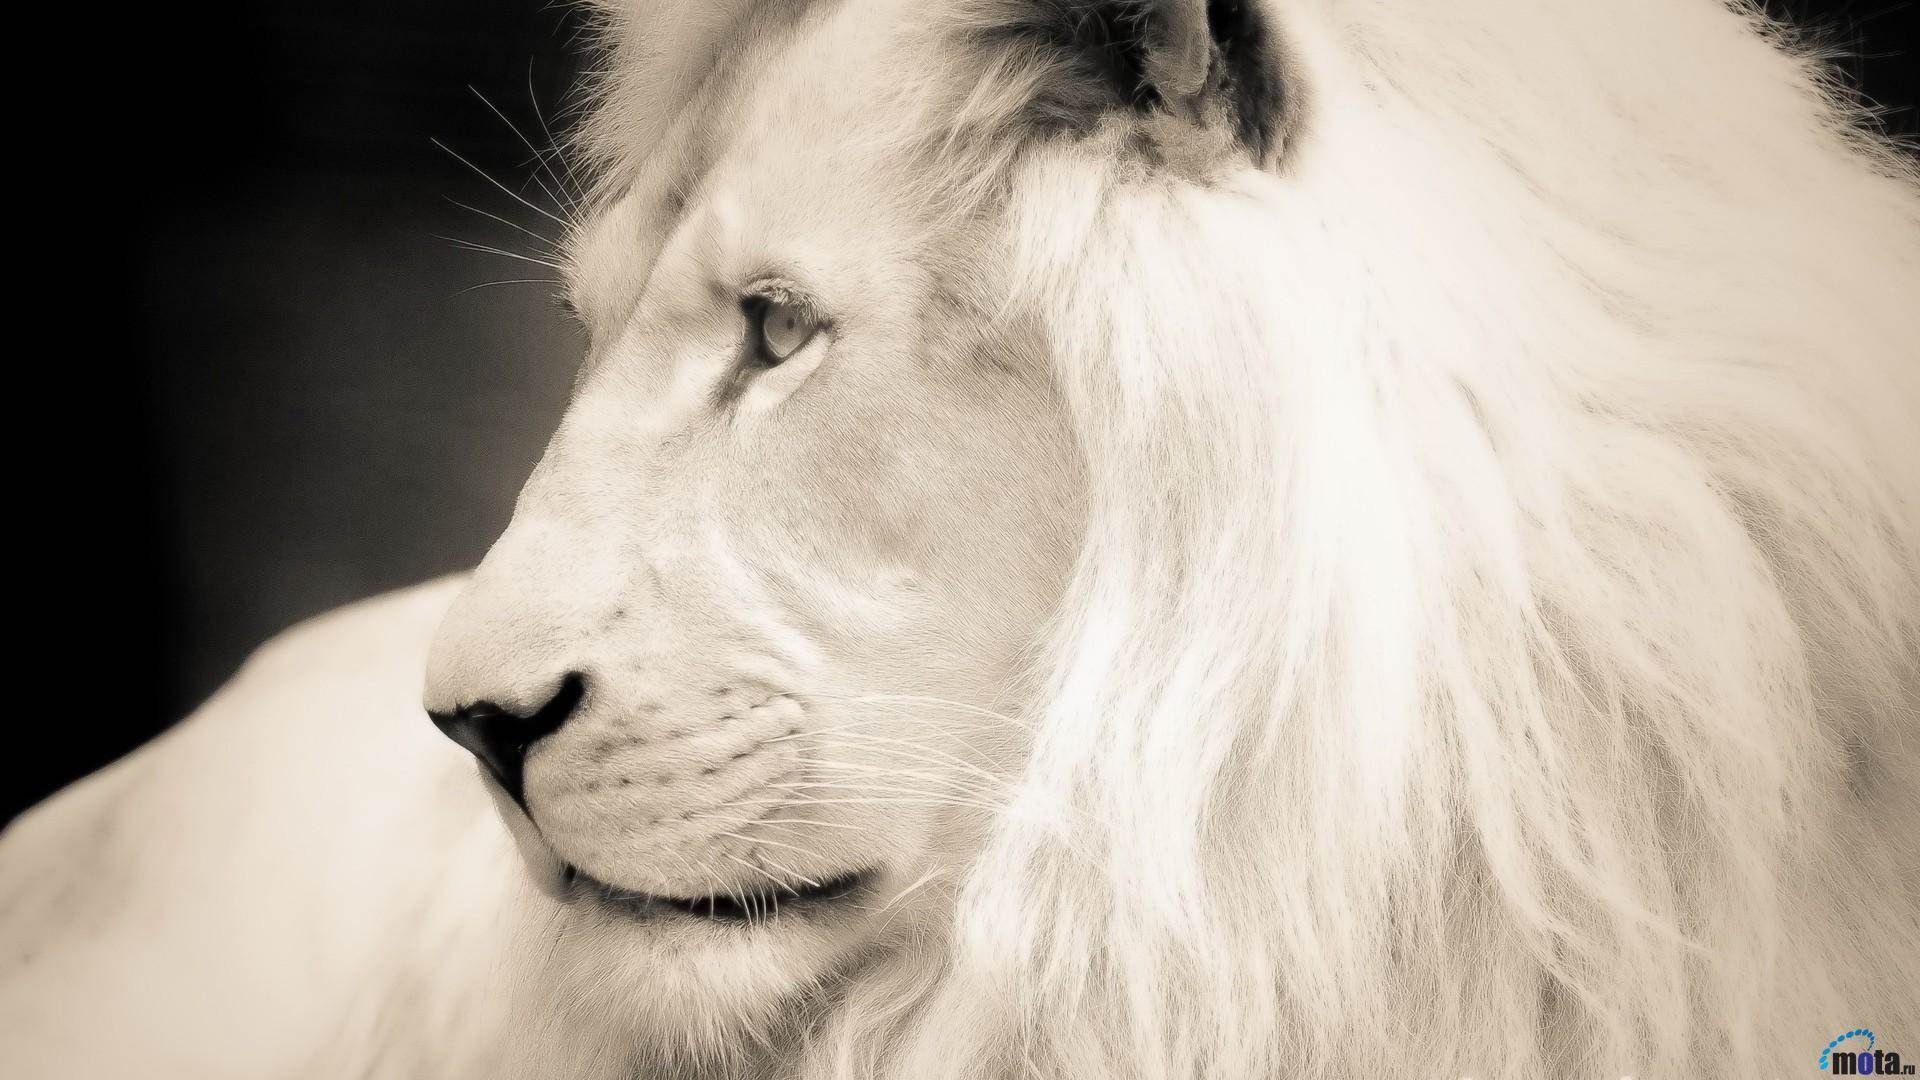 White Lion Hd Wallpapers Backgrounds Wallpaper 1920 1080 White Lion Images Adorable Wallpapers White Lion Images White Lion Lion Wallpaper